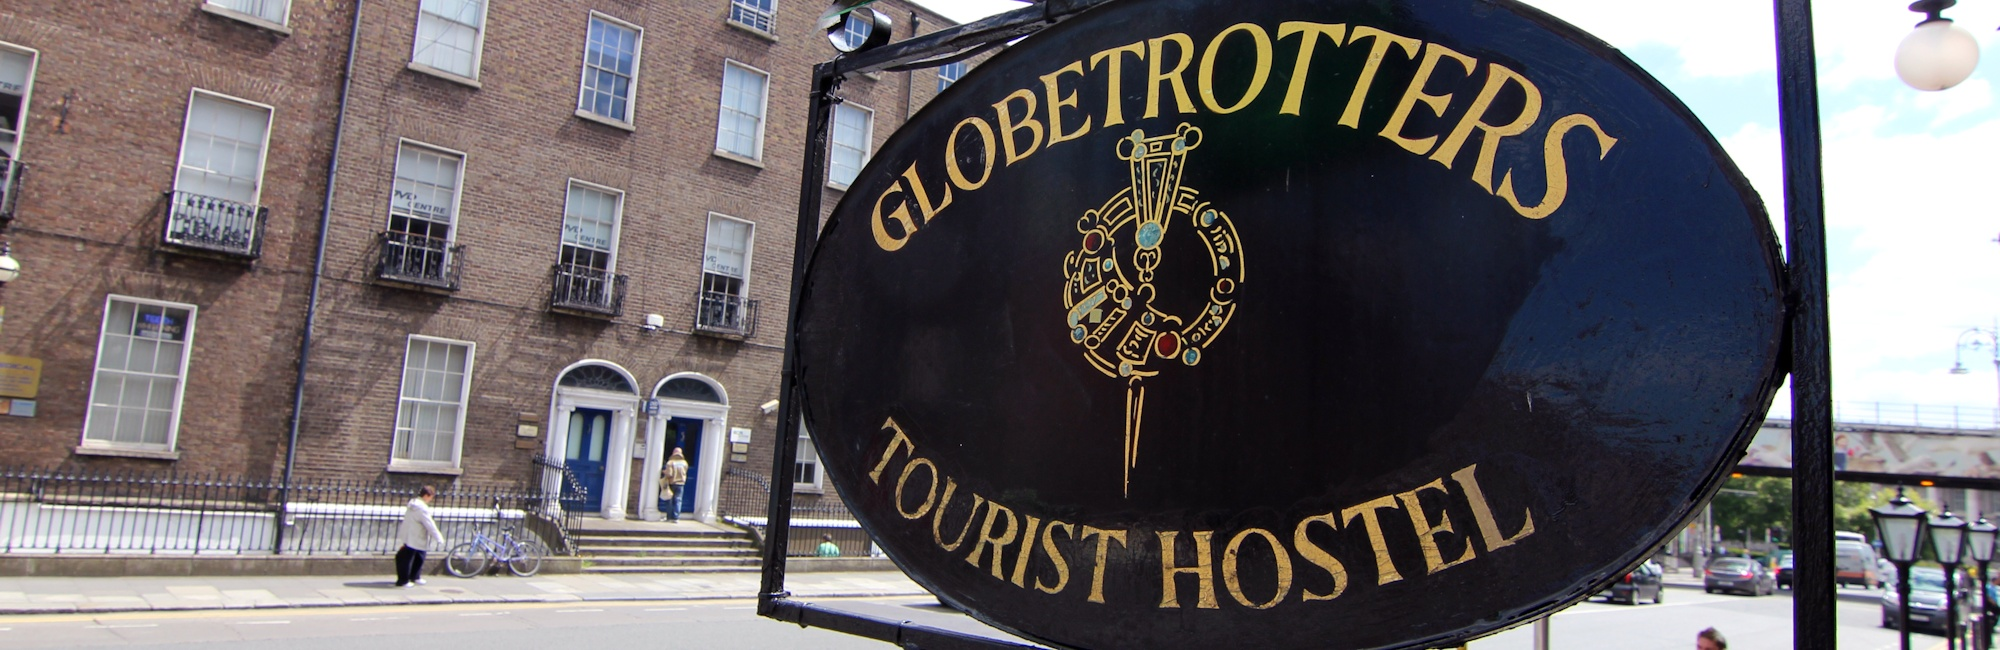 Globetrotters Tourist Hostel